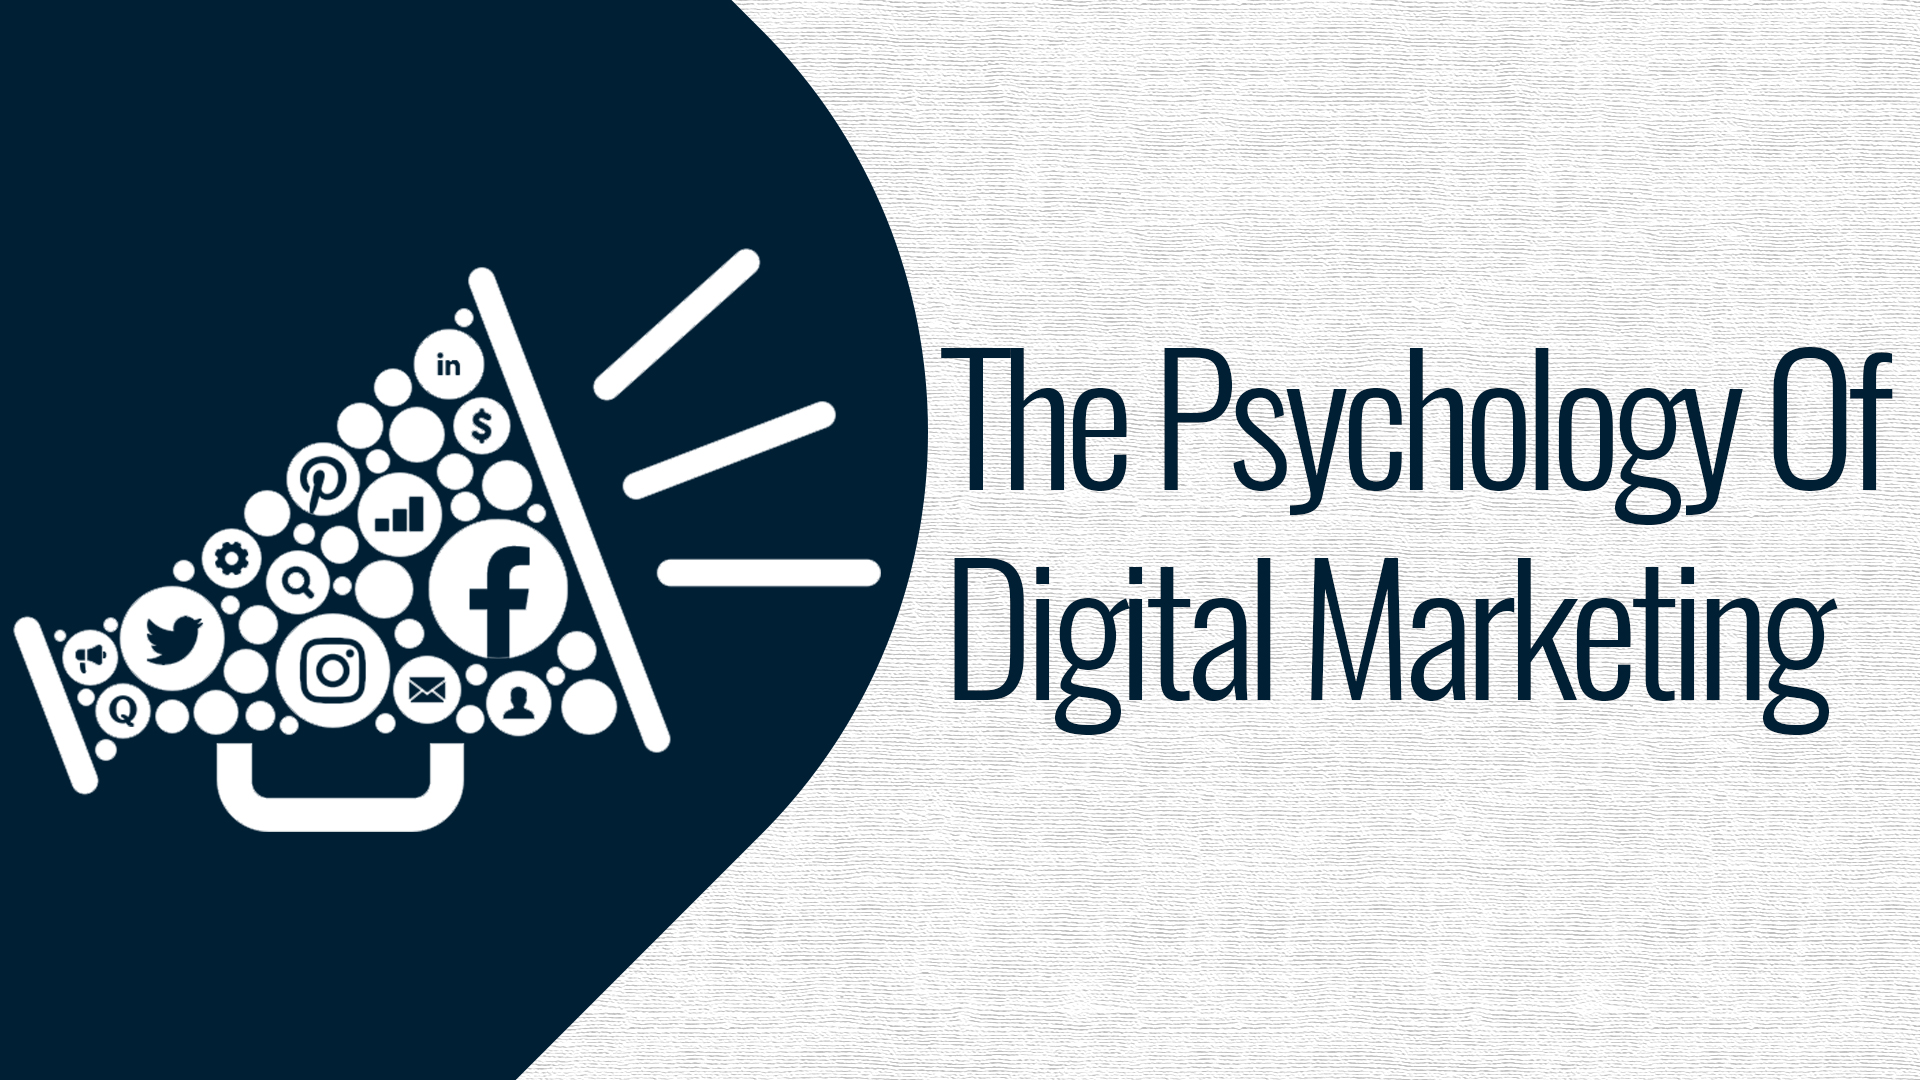 The Psychology Of Digital Marketing | Keynote